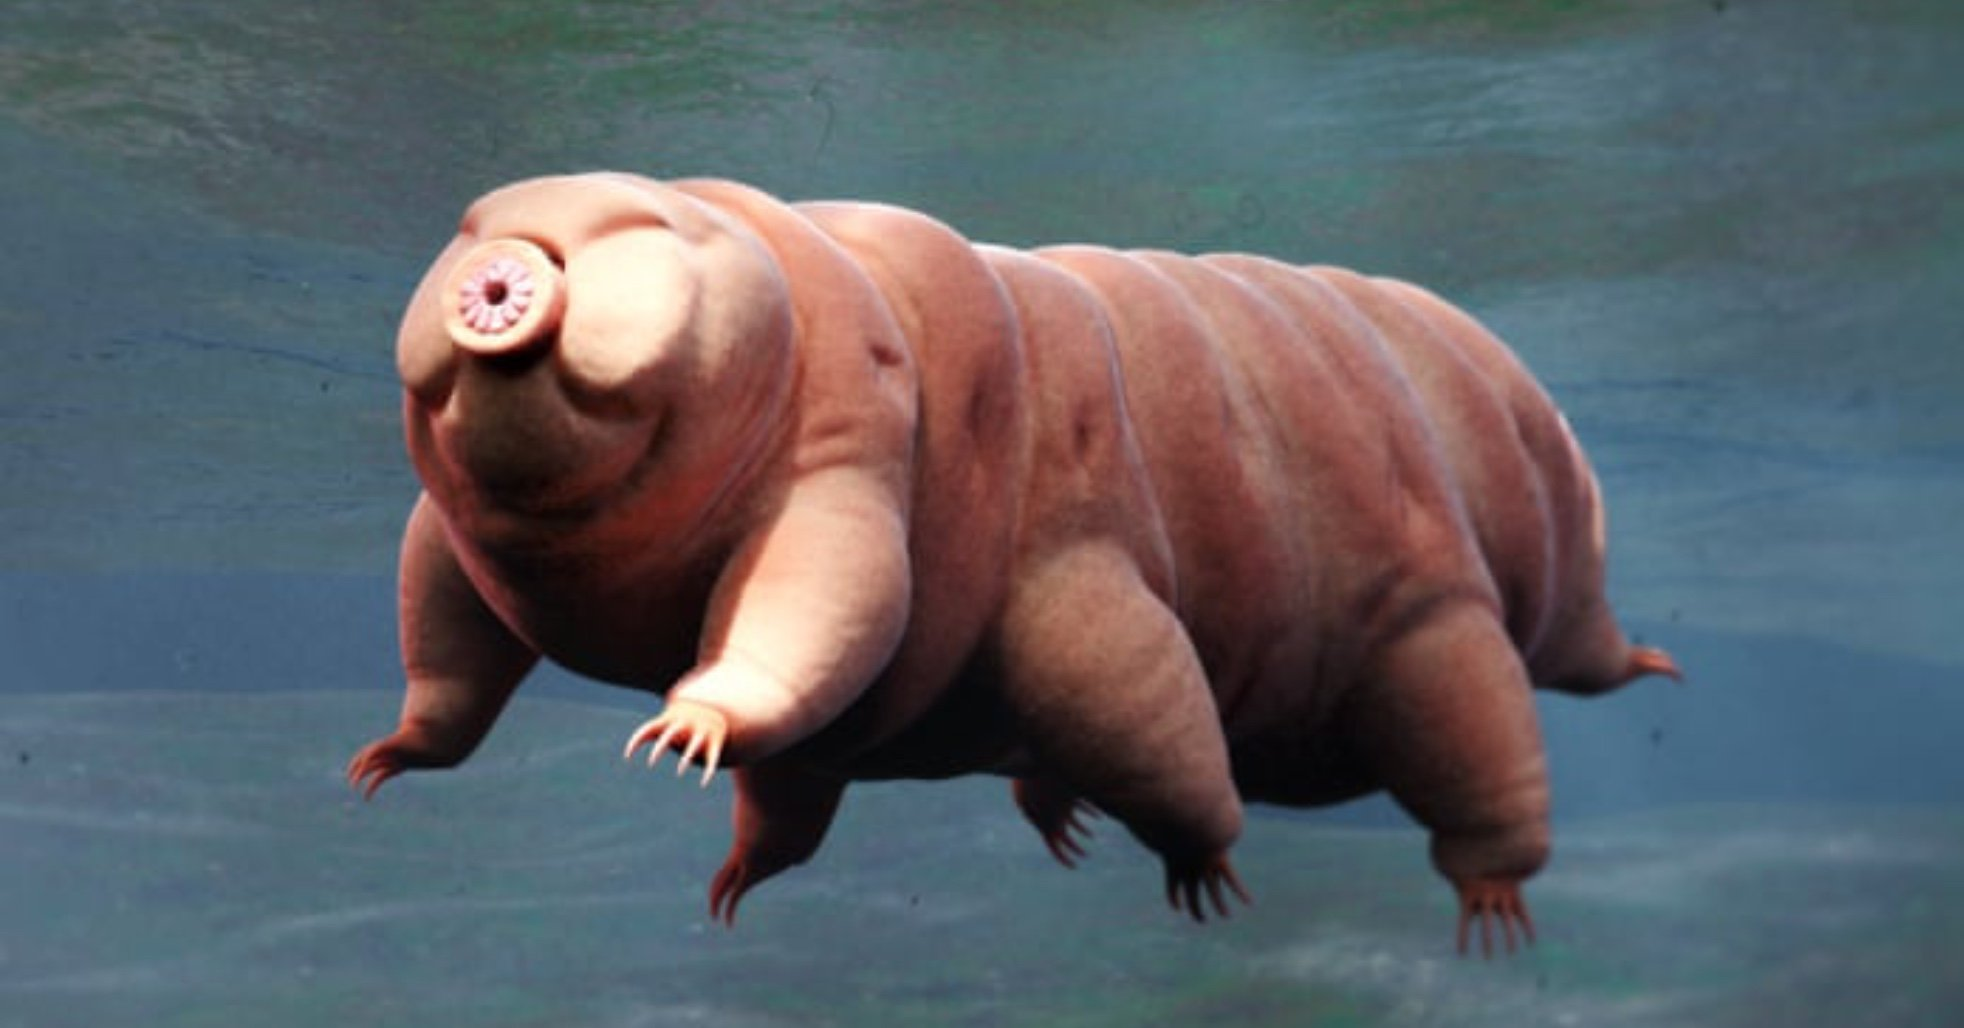 sus.jpg?resize=1200,630 - 10 of the World's Strangest Animals You Have Never Seen Before